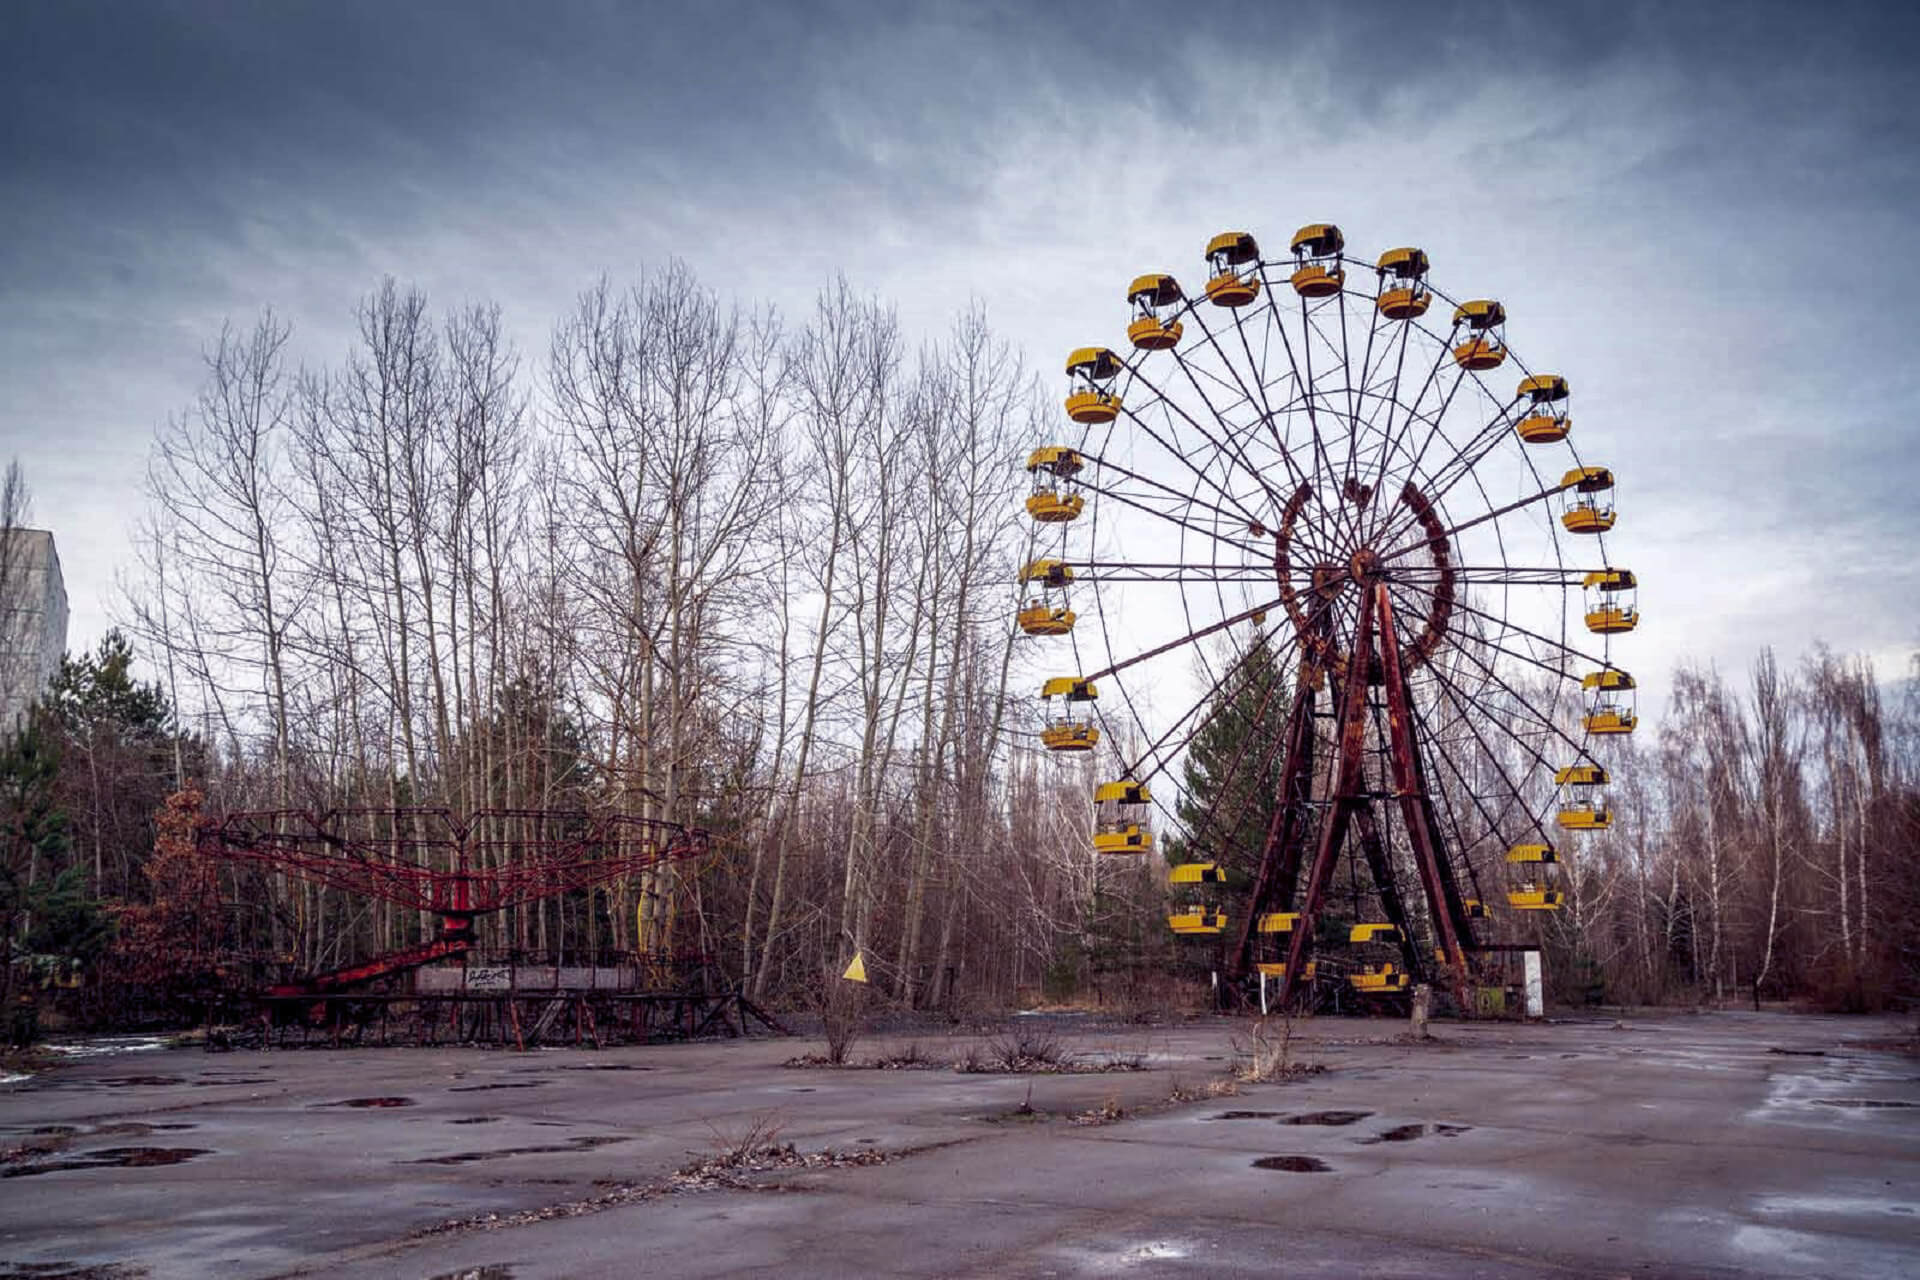 Tourism In CHERNOBYL